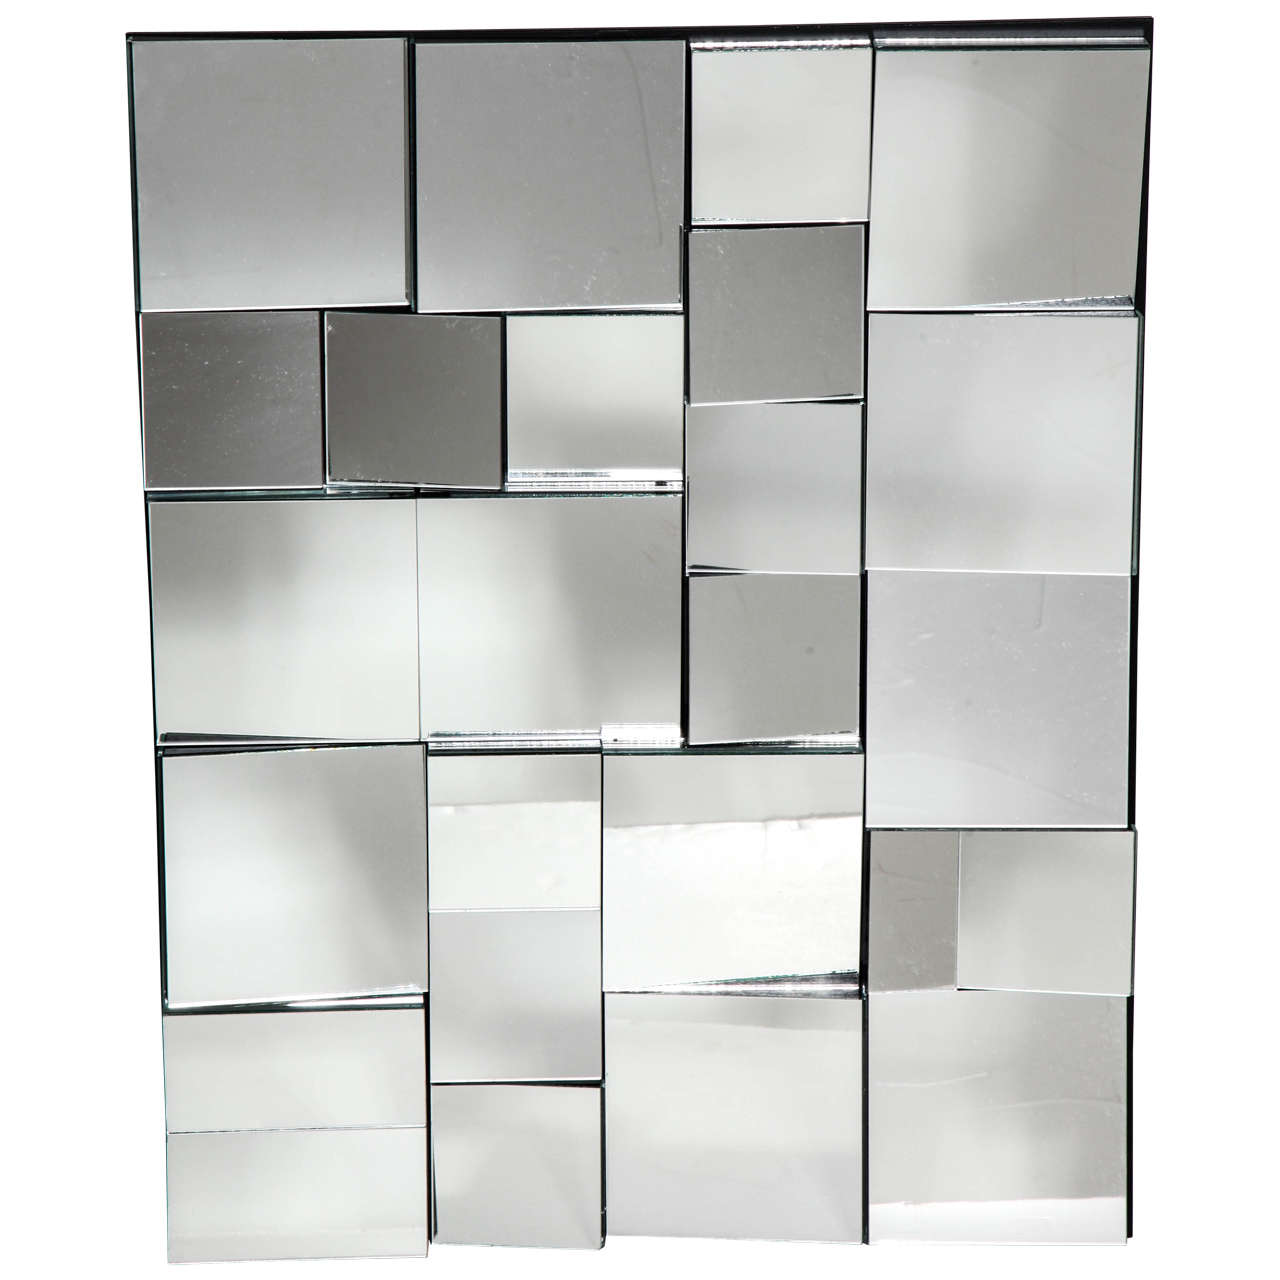 """Neal Small Limited Edition Smaller Faceted """"Slopes"""" Mirror, circa 2000"""